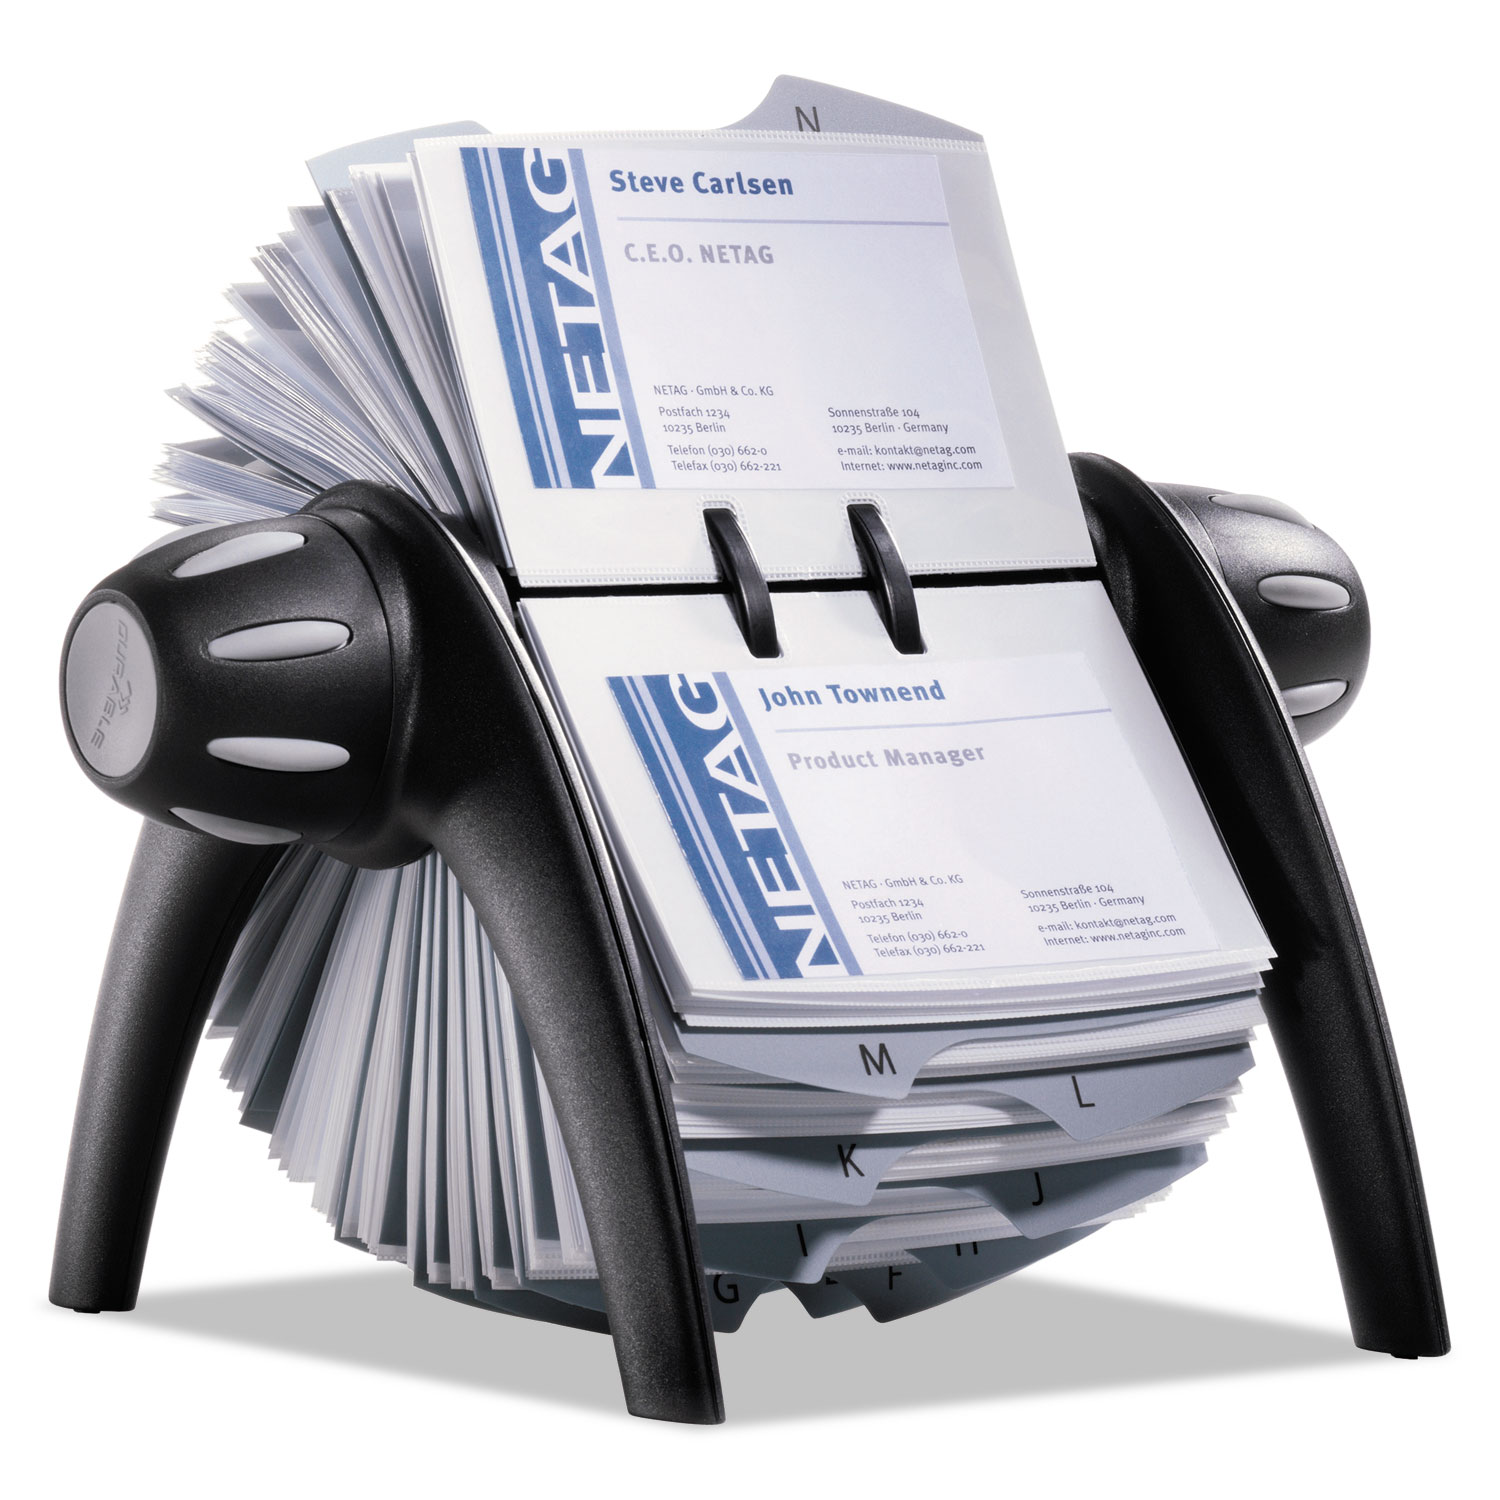 Visifix flip rotary business card file by durable dbl241701 visifix flip rotary business card file holds 400 4 18 x 2 78 cards blacksr reheart Gallery